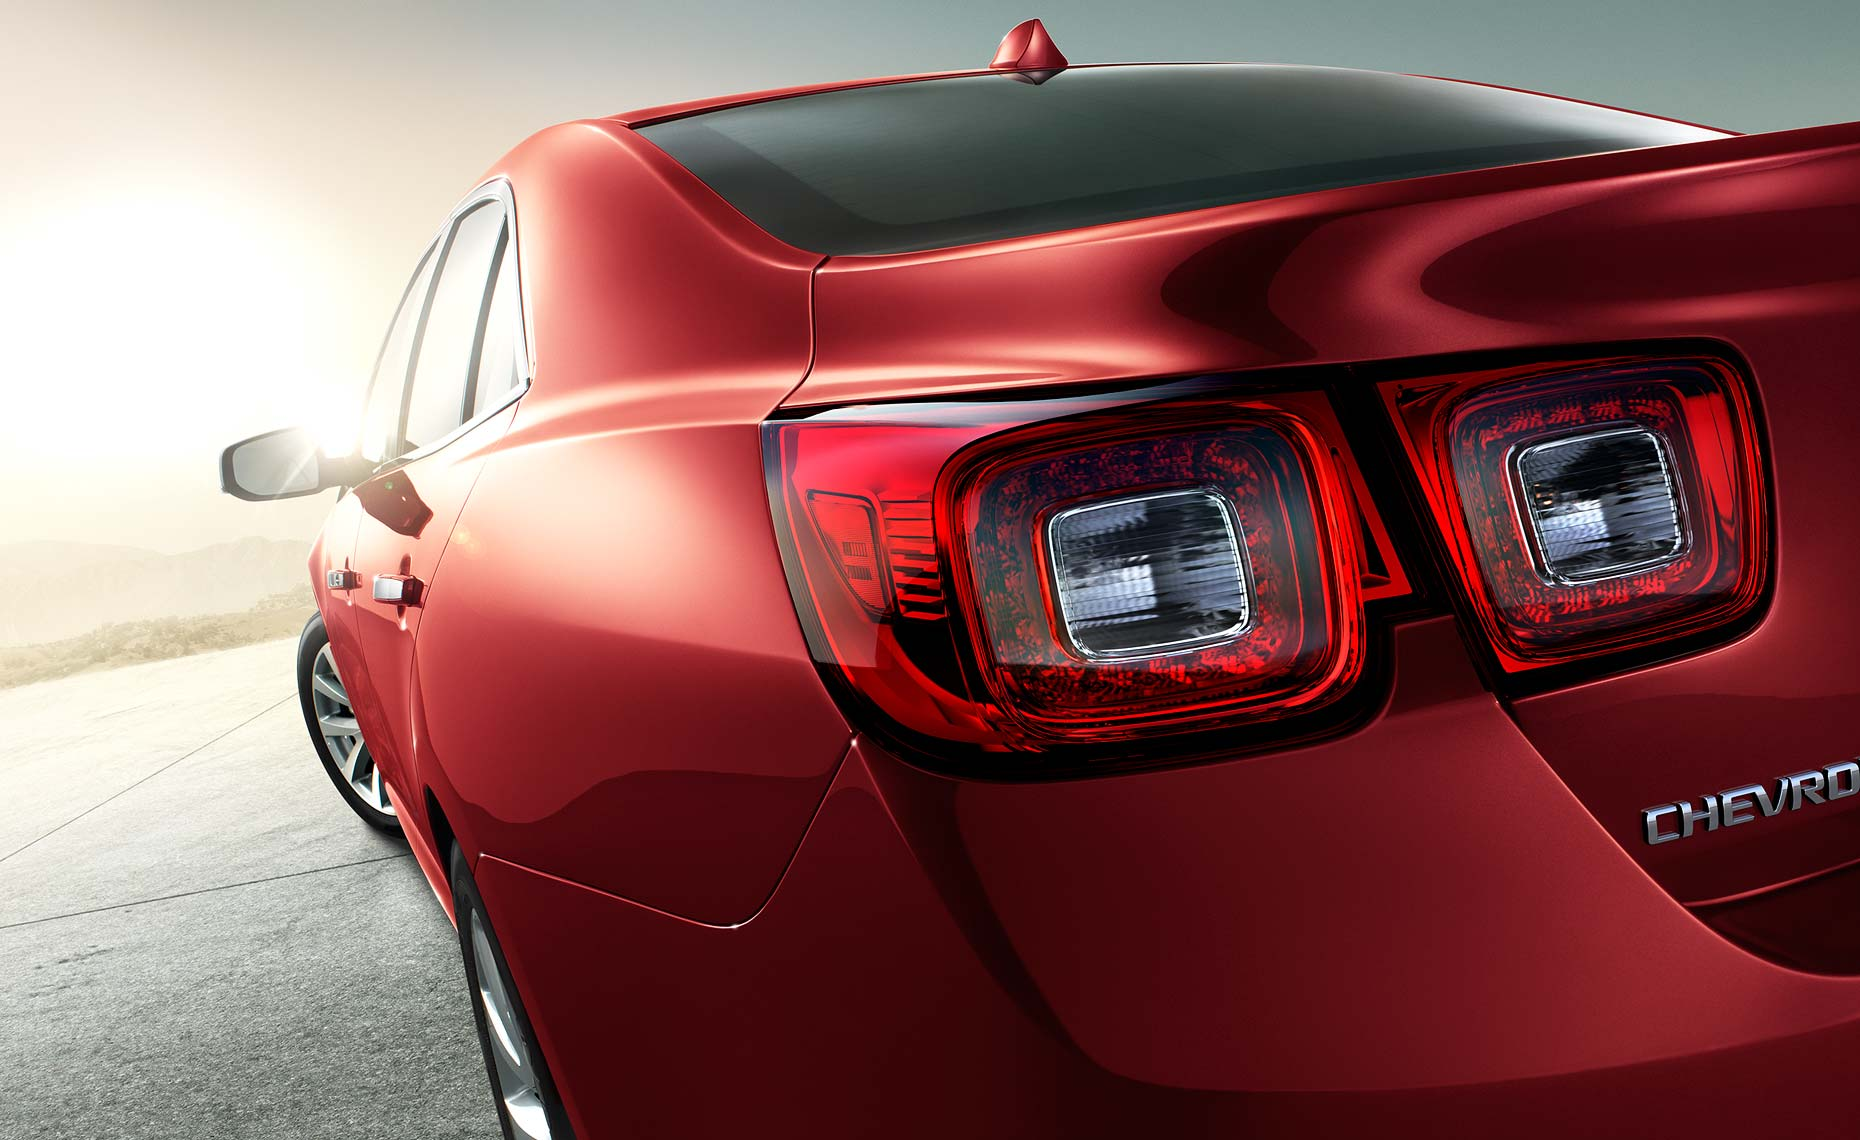 2013 chevy malibu-red-3qtr rear.jpg